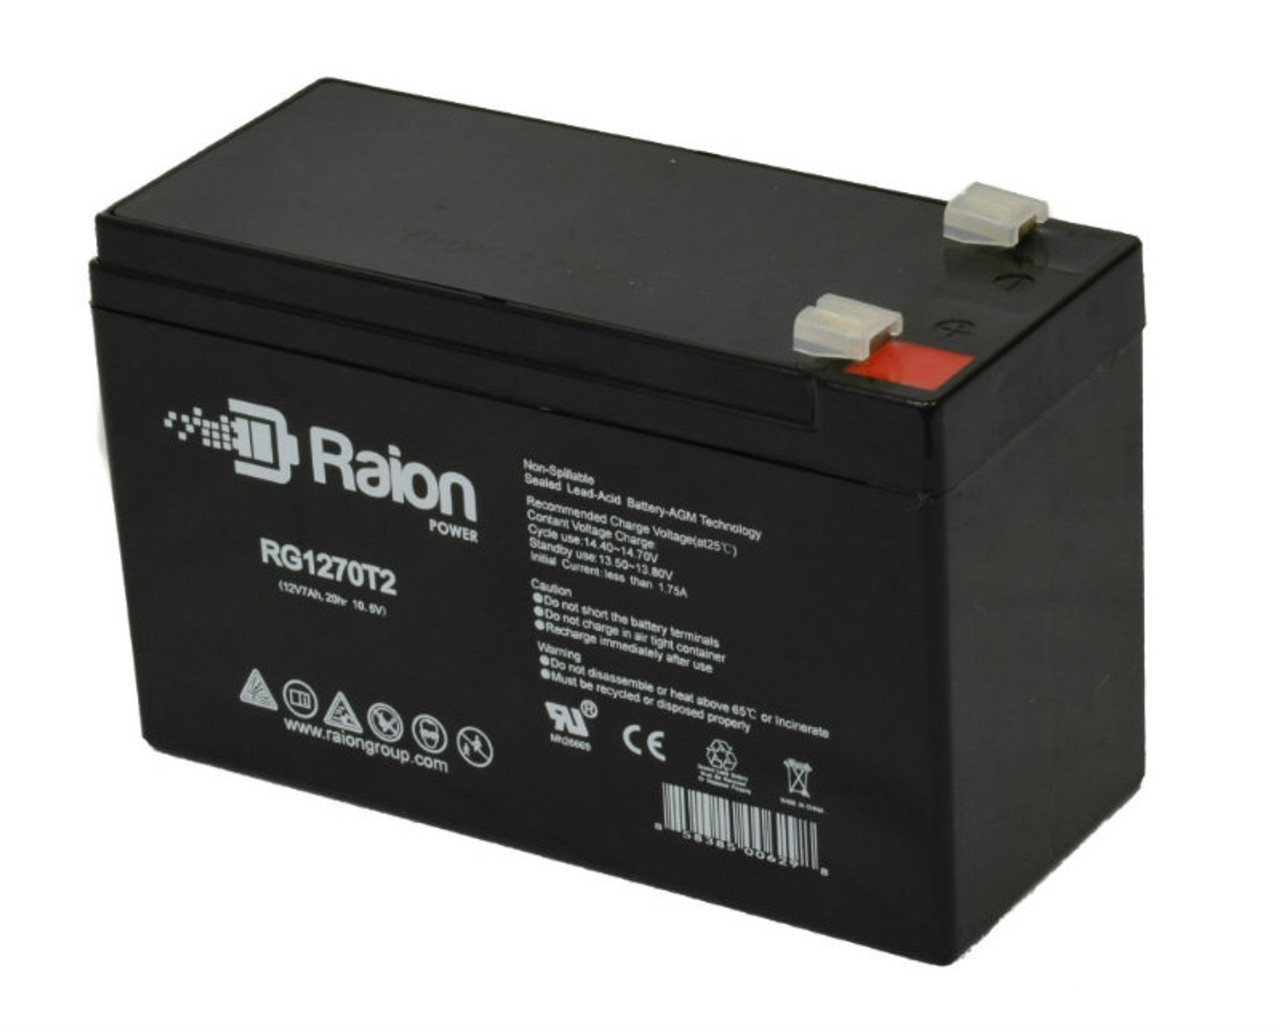 Raion Power RG1270T1 Replacement Battery for Panasonic LCR12V6.5BP